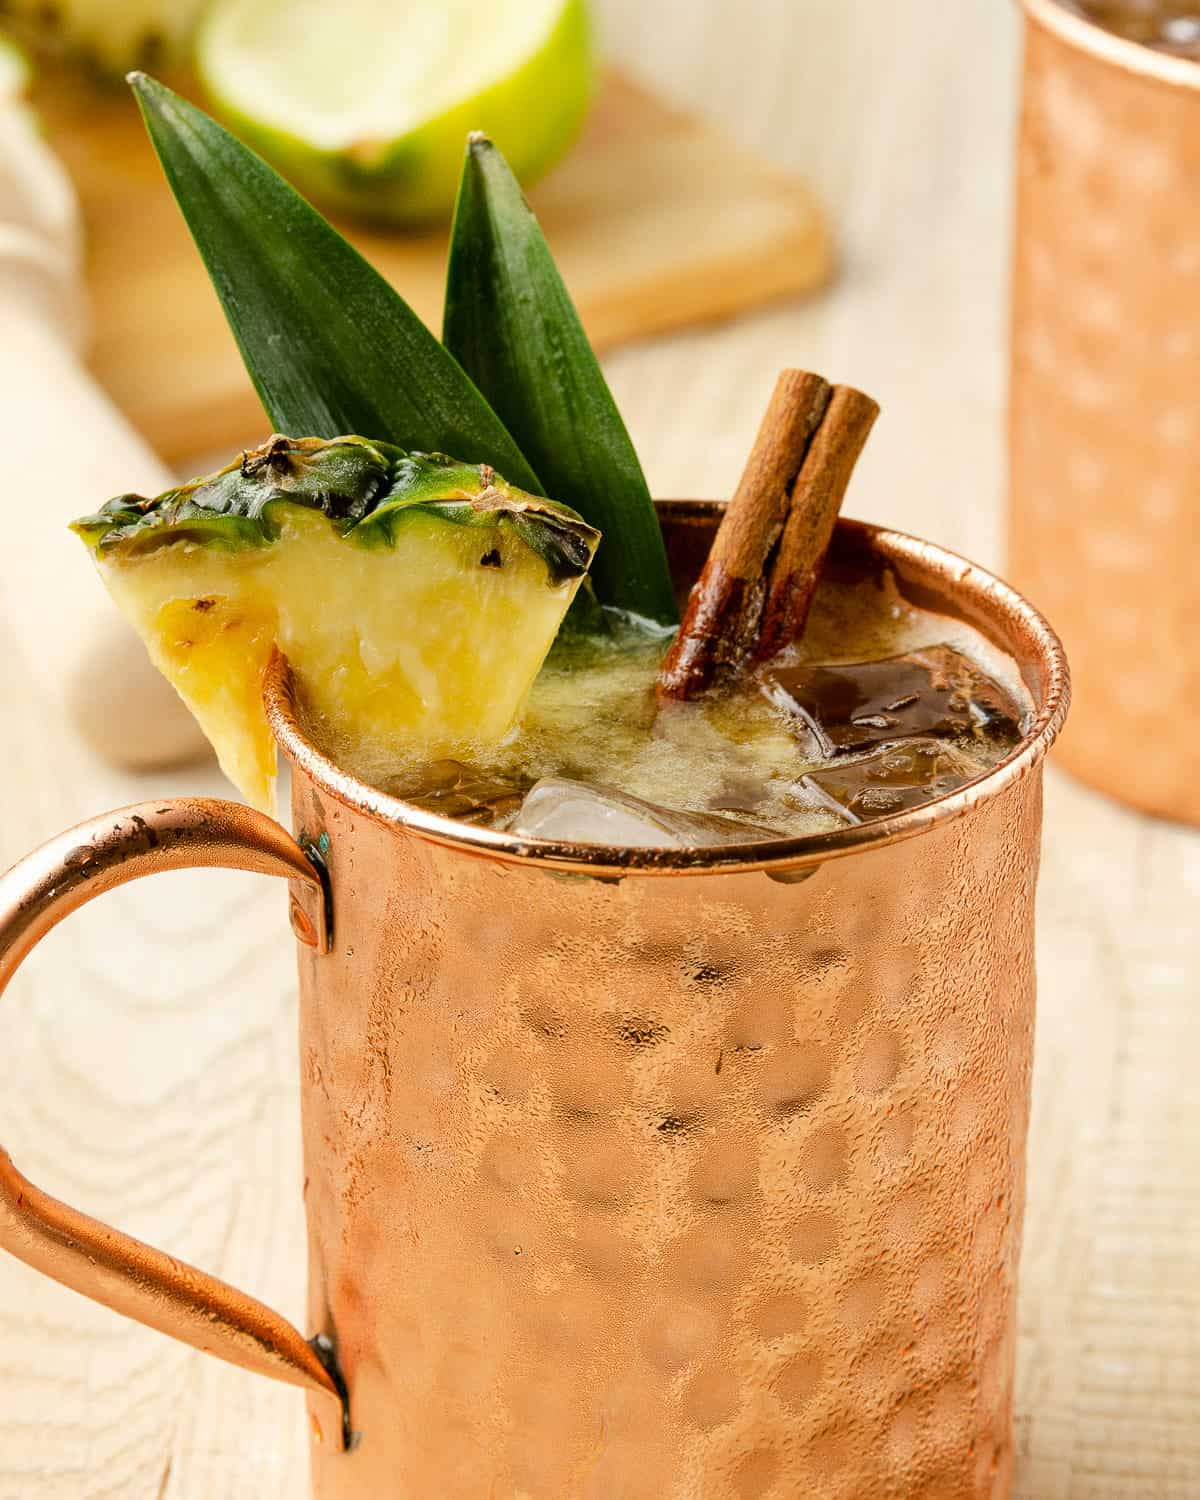 close up of the garnish on a rum moscow mule: a fresh pineapple wedge, pineapple leaves and a cinnamon stick.